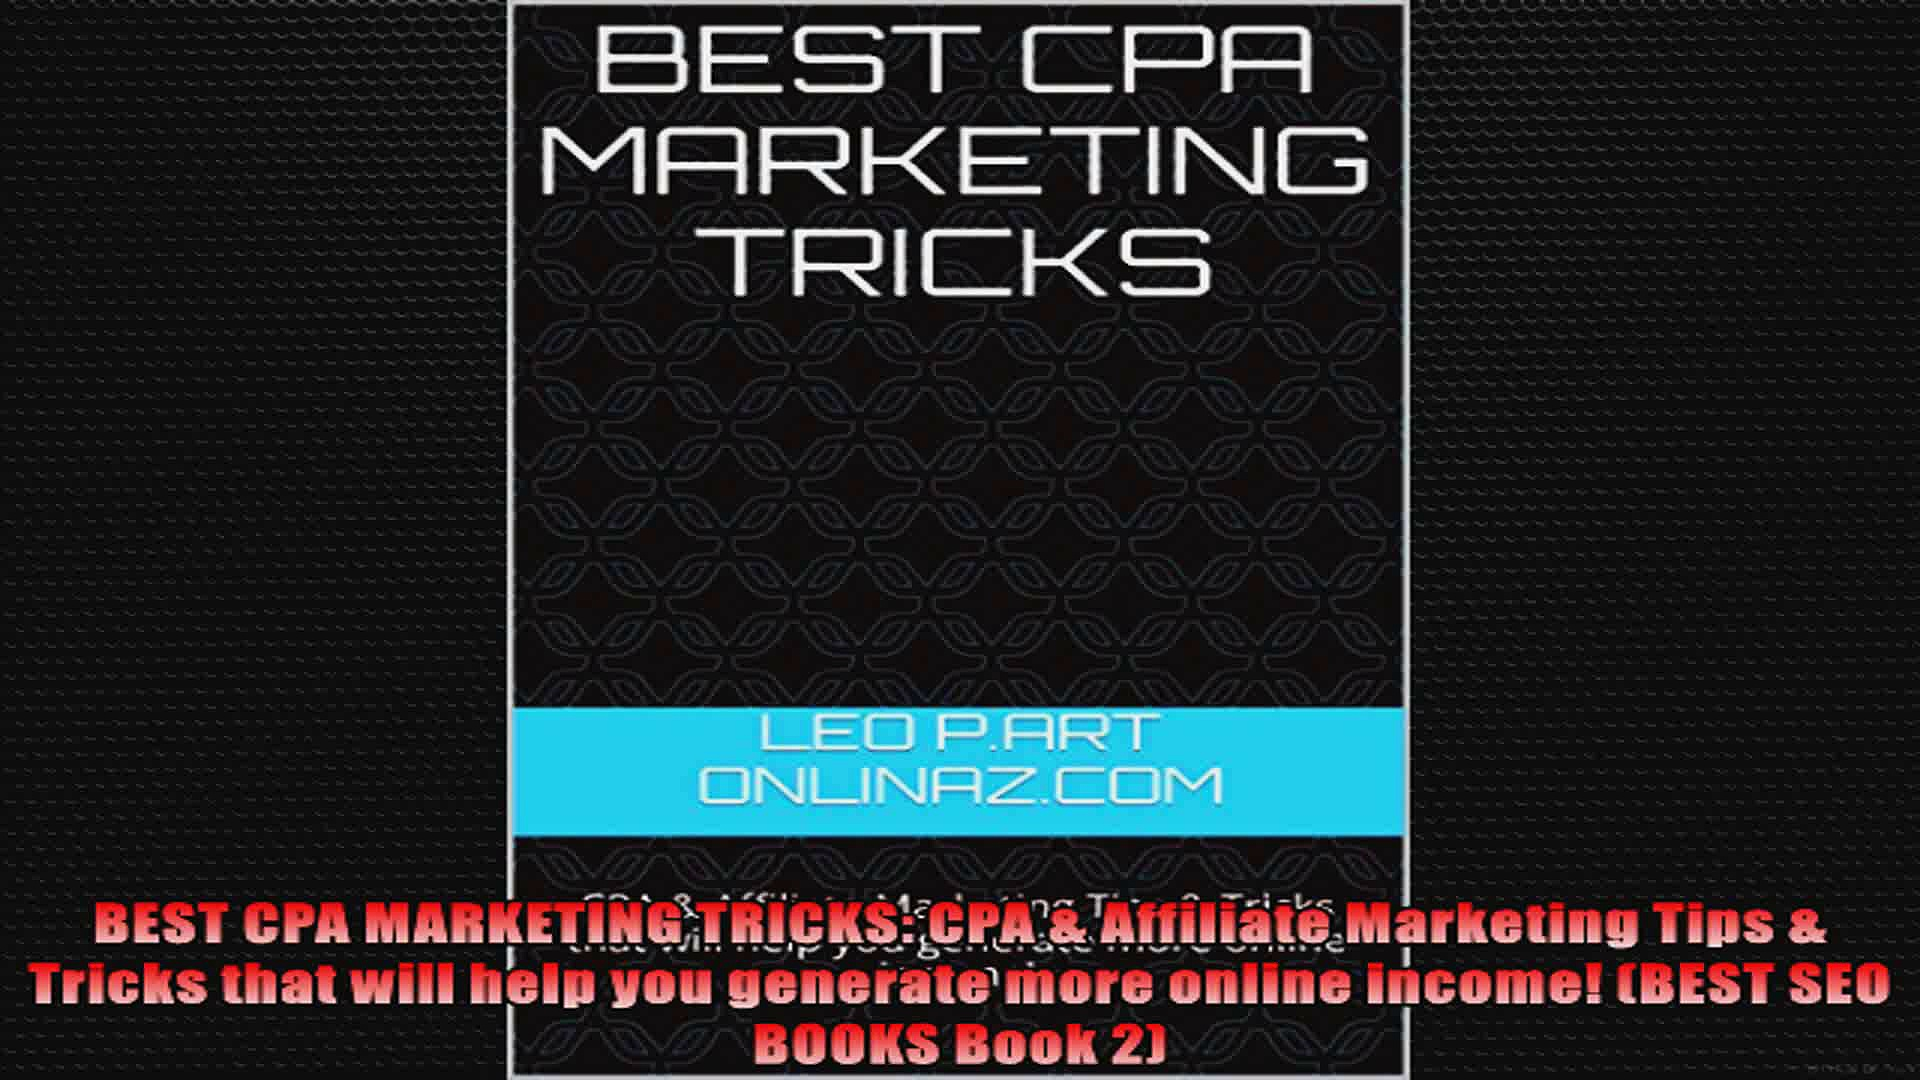 BEST CPA MARKETING TRICKS CPA  Affiliate Marketing Tips  Tricks that will help you